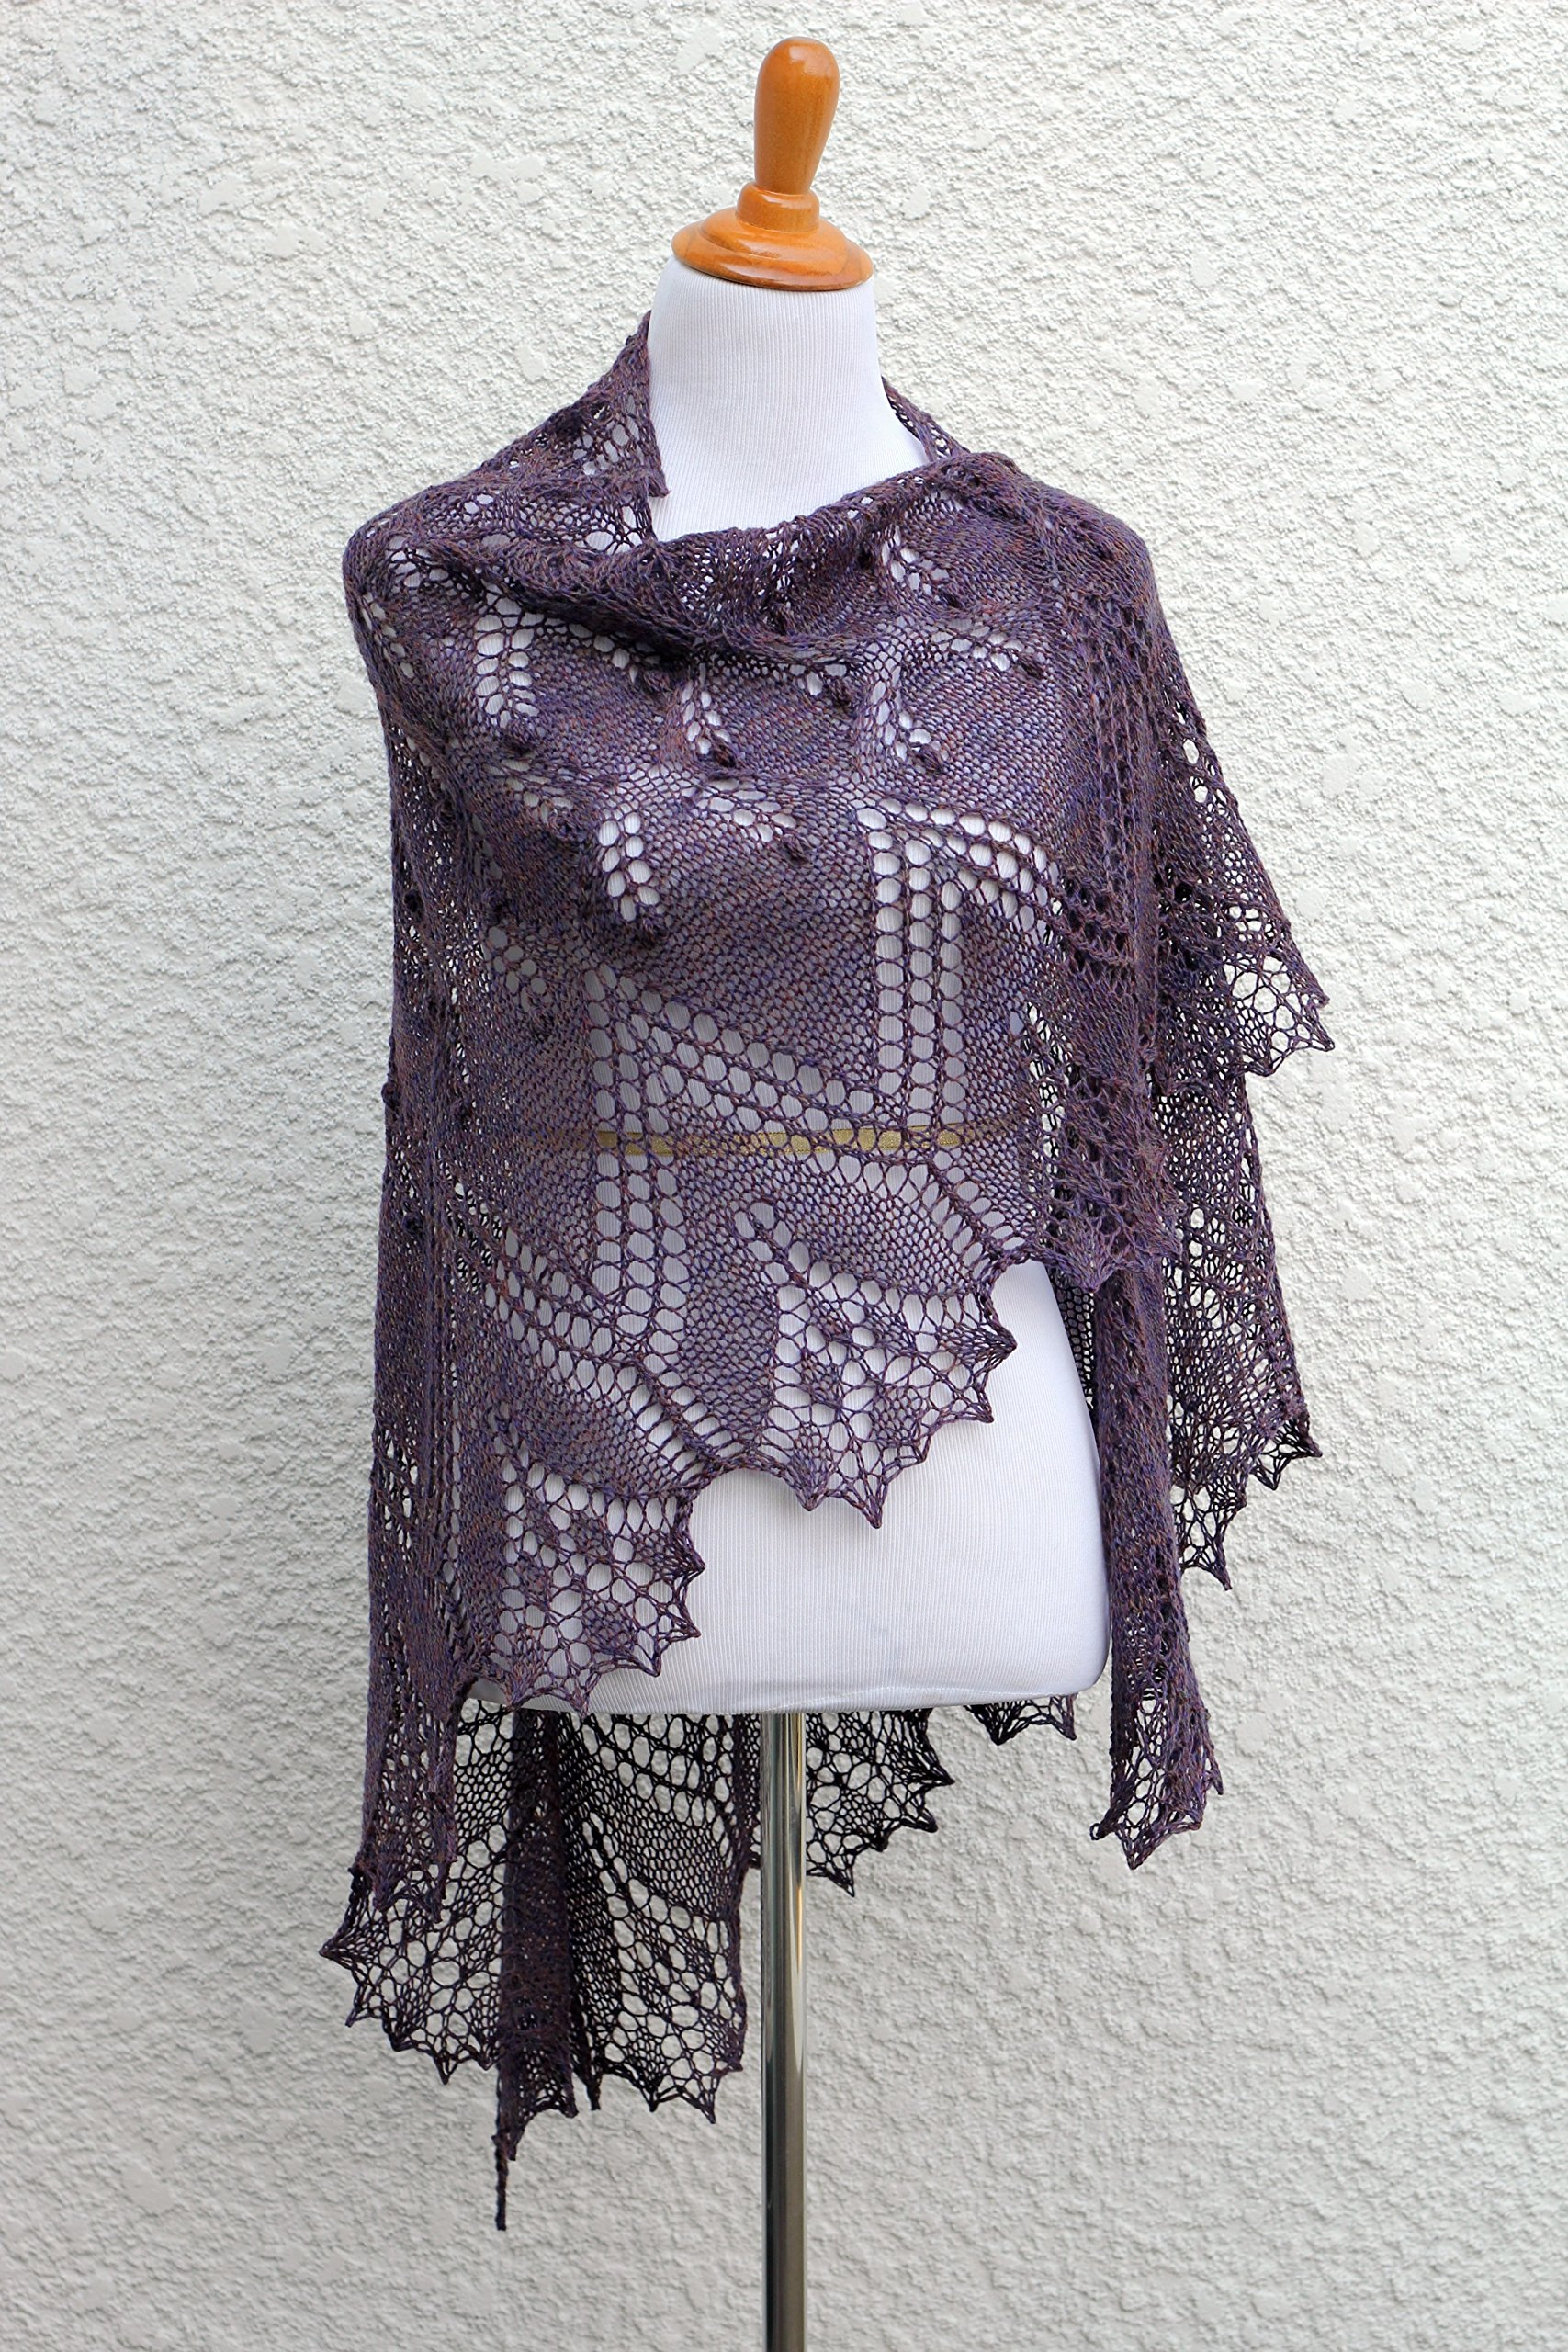 Knit shawl with nupps in red violet color, gift for her